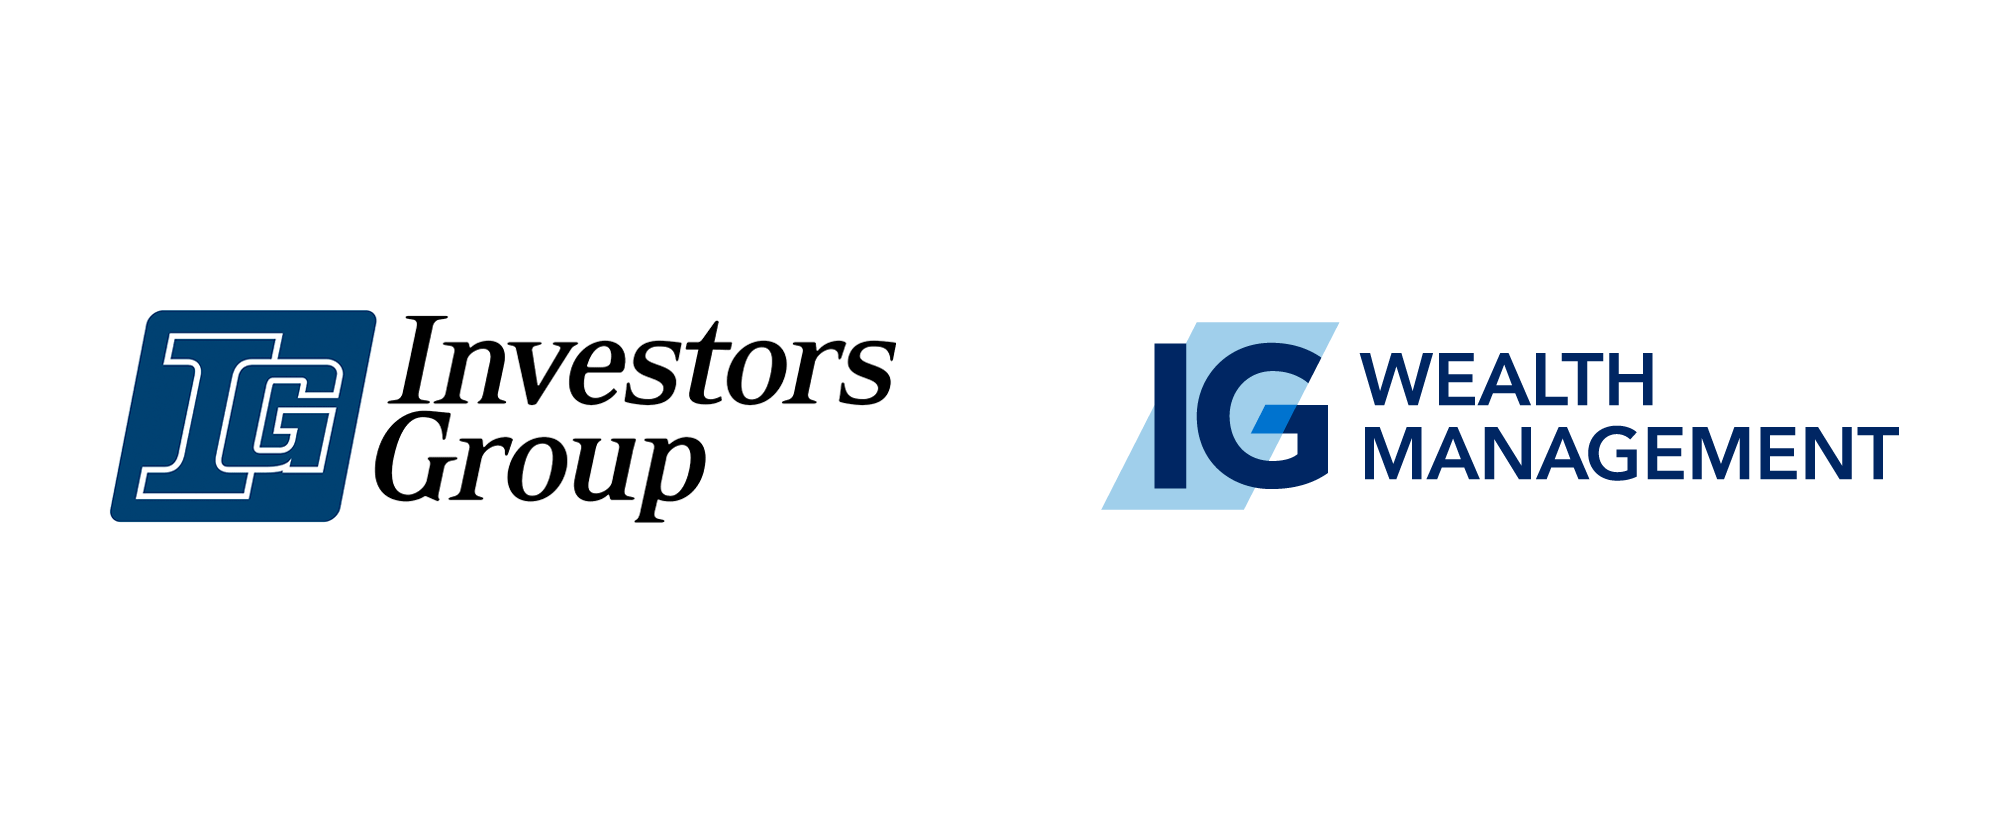 New Name and Logo for IG Wealth Management